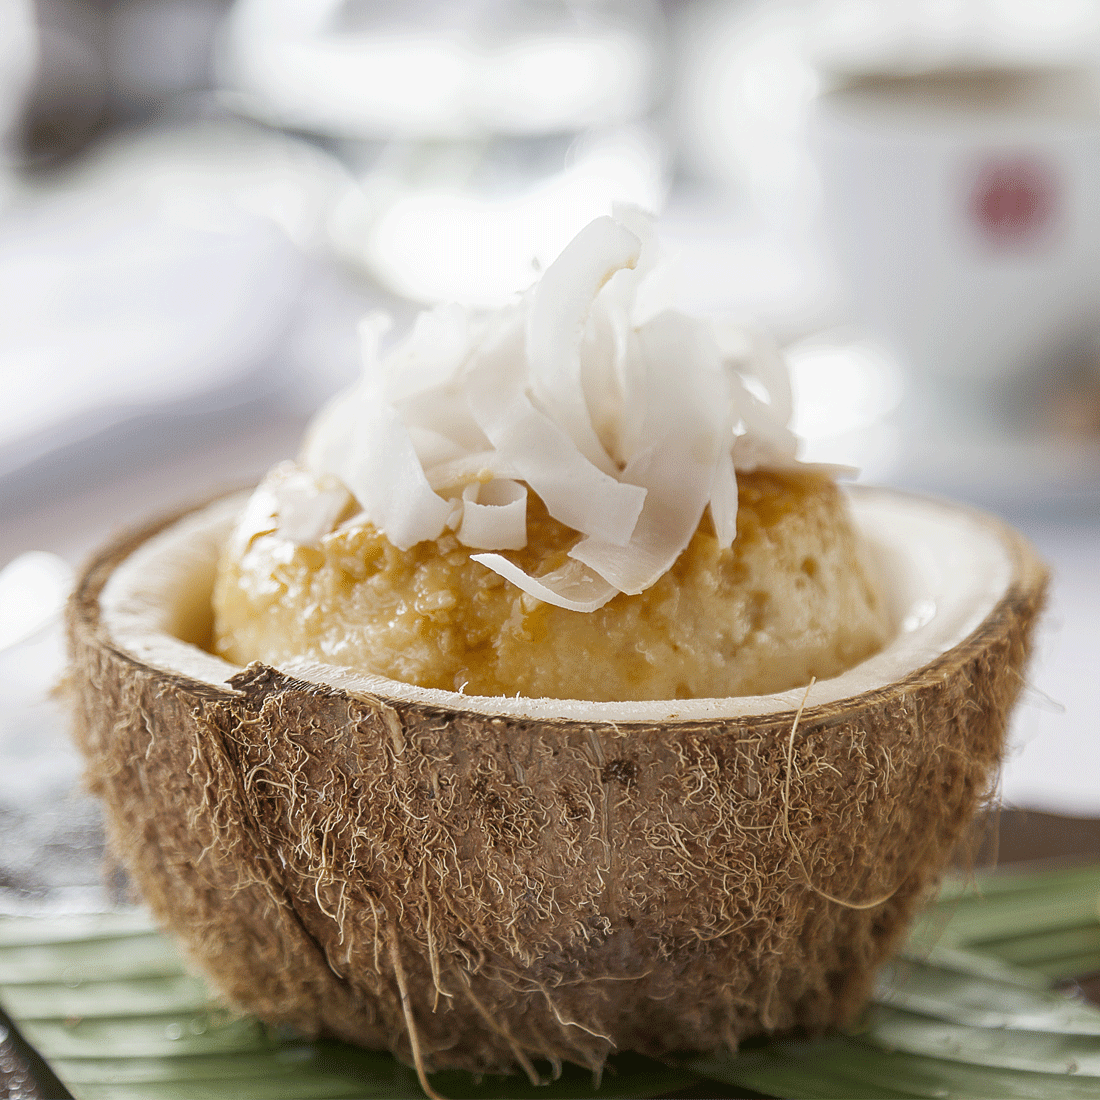 Coconut Parfait with Al Rabie Pineapple Juice